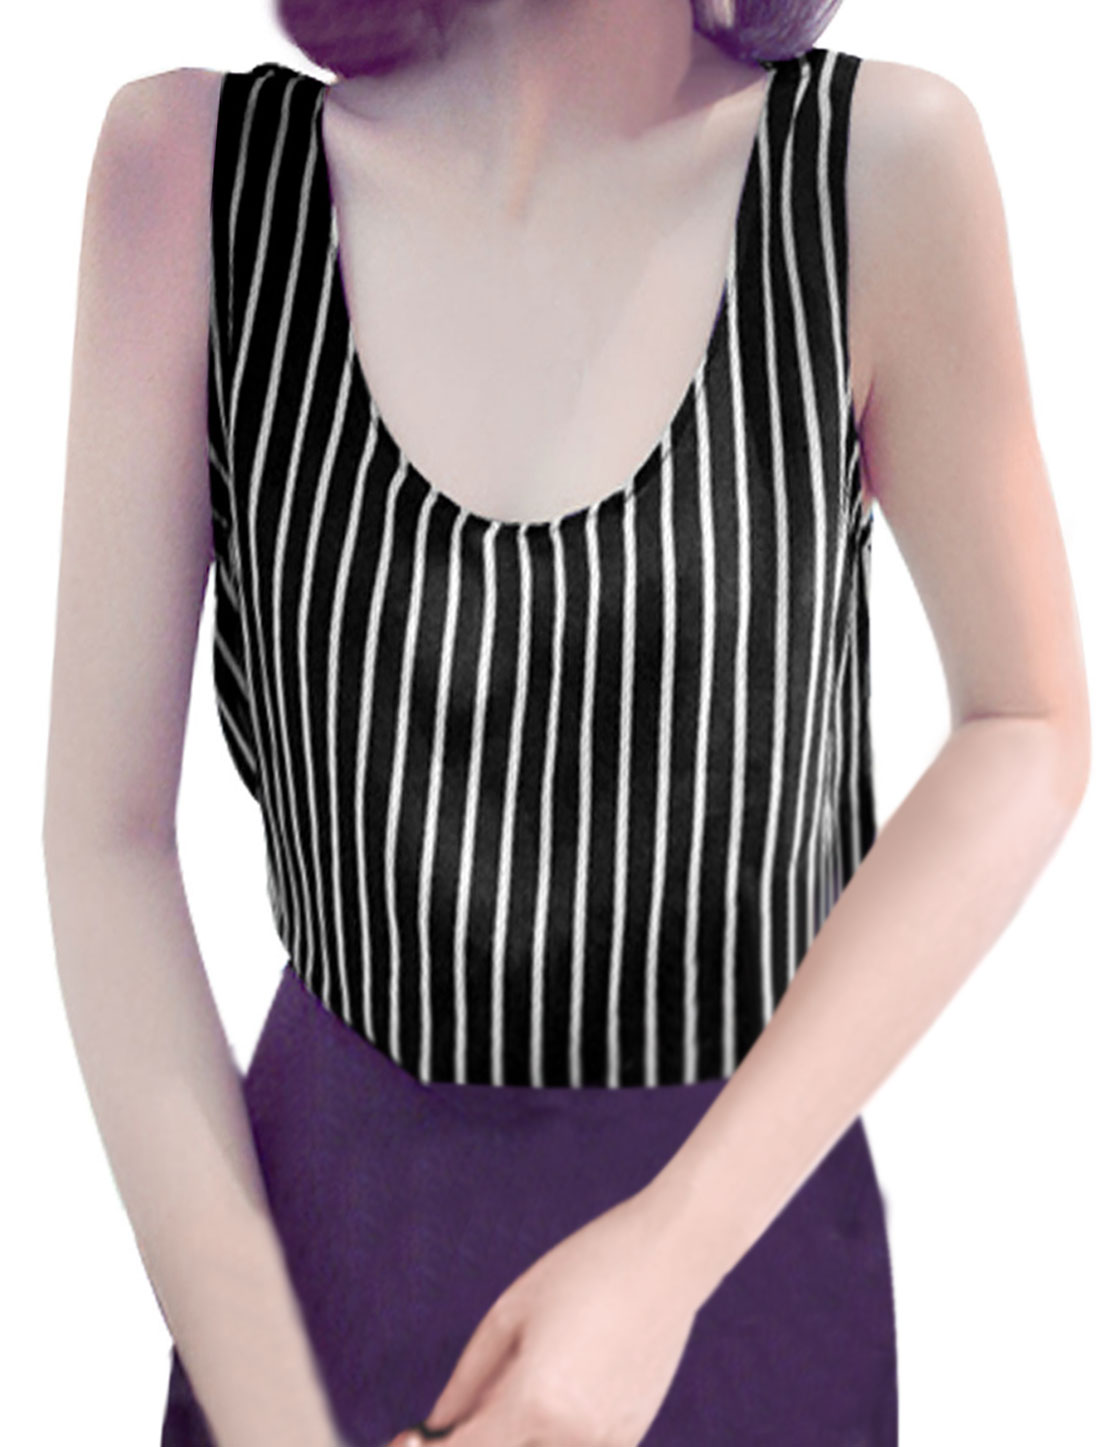 Lady Pullover U Neck Sleeveless Stripes Chiffon Tank Top Black XS